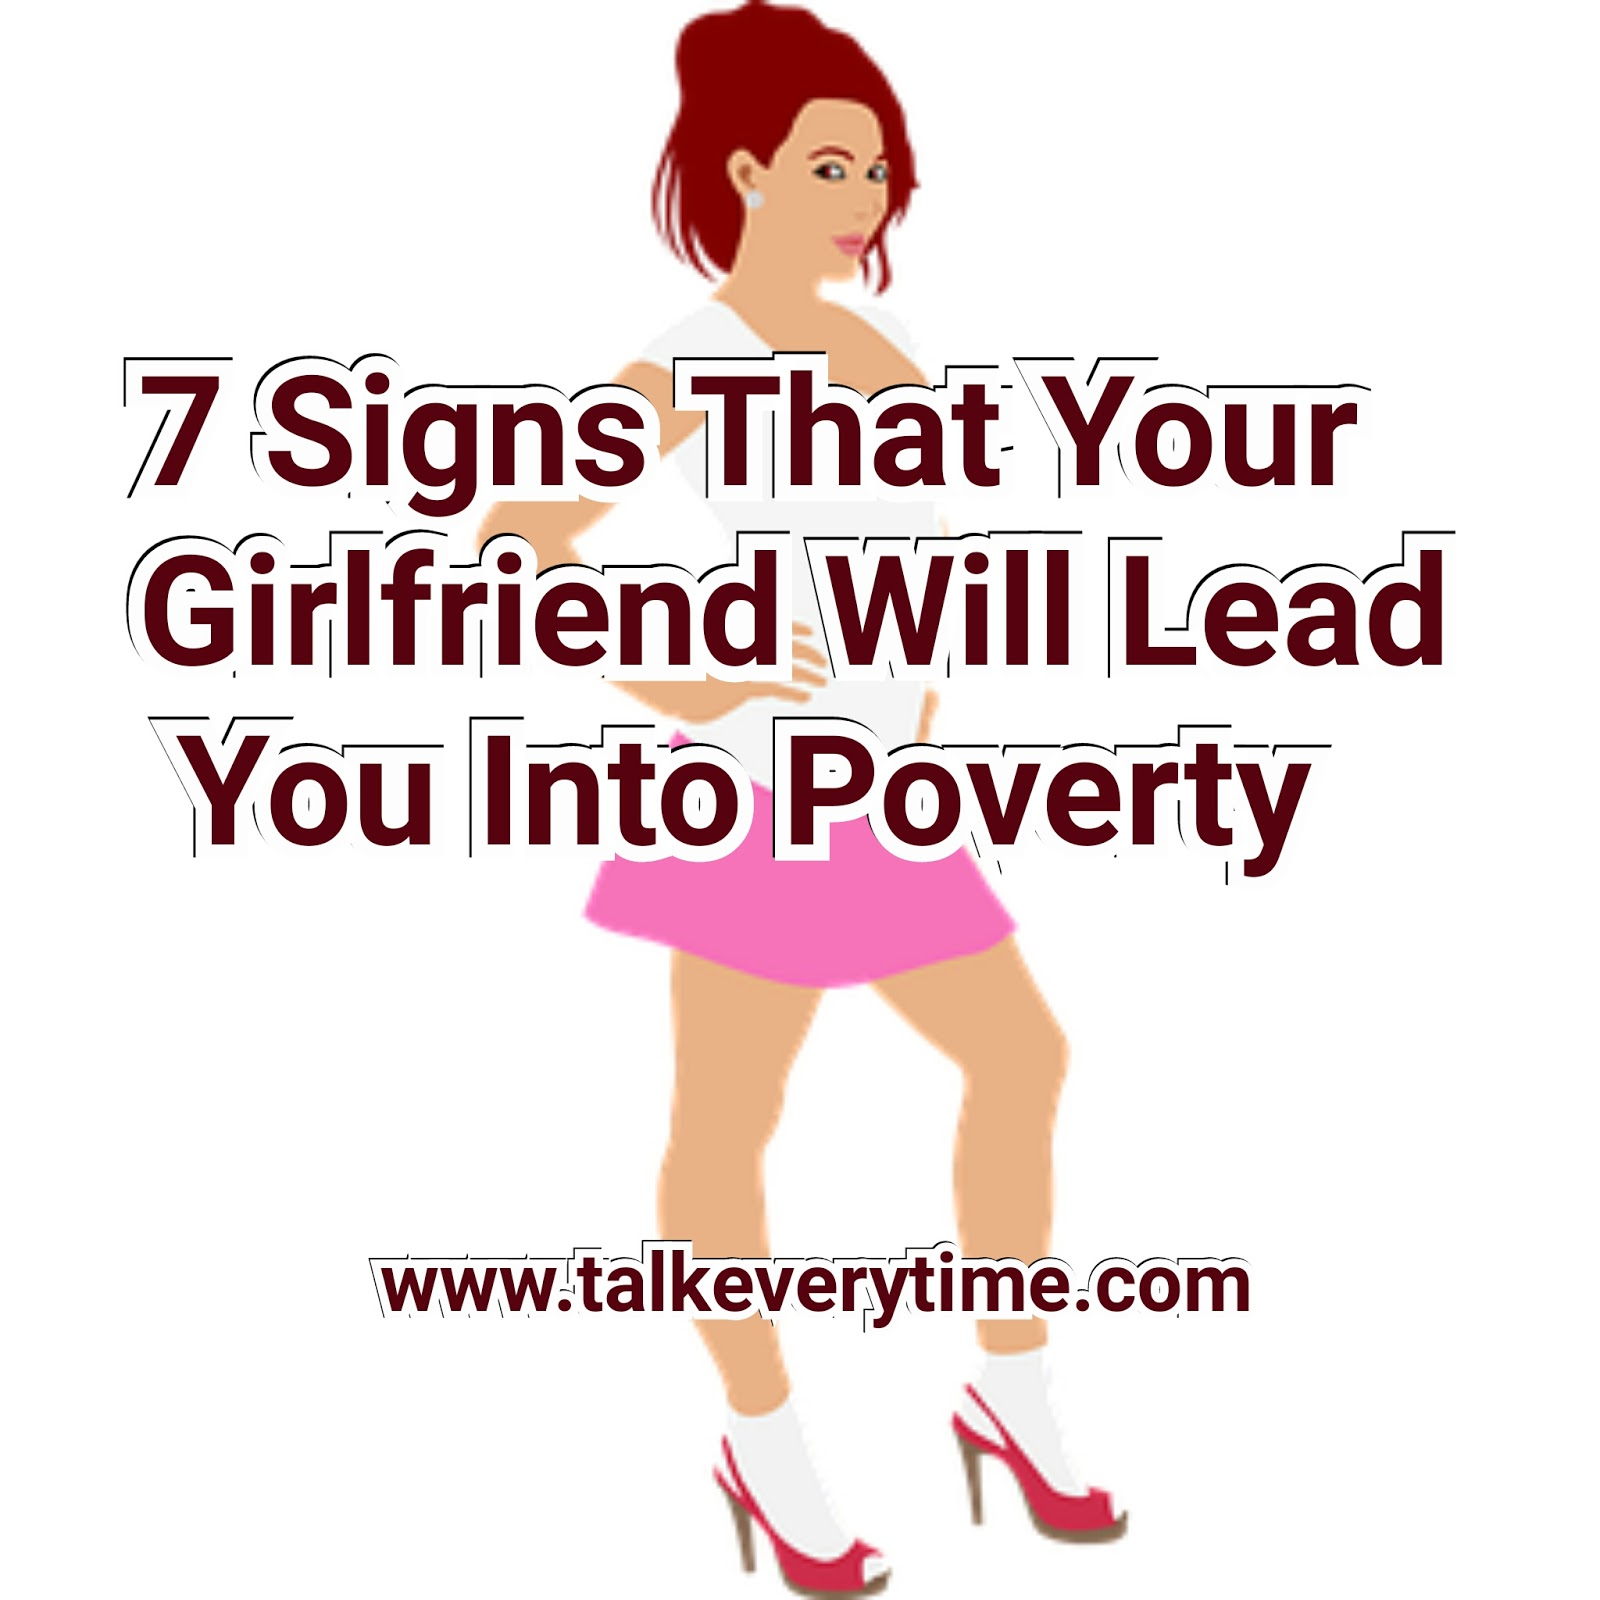 7 Signs That Your Girlfriend Will Lead You Into Poverty